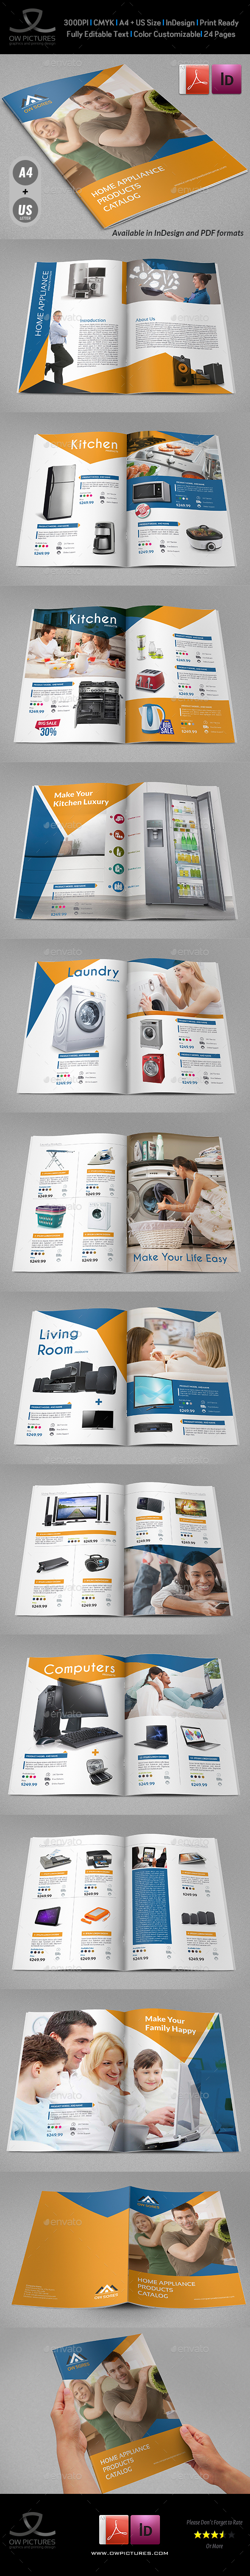 Products Catalog Brochure Template Vol2 - 24 Pages - Catalogs Brochures